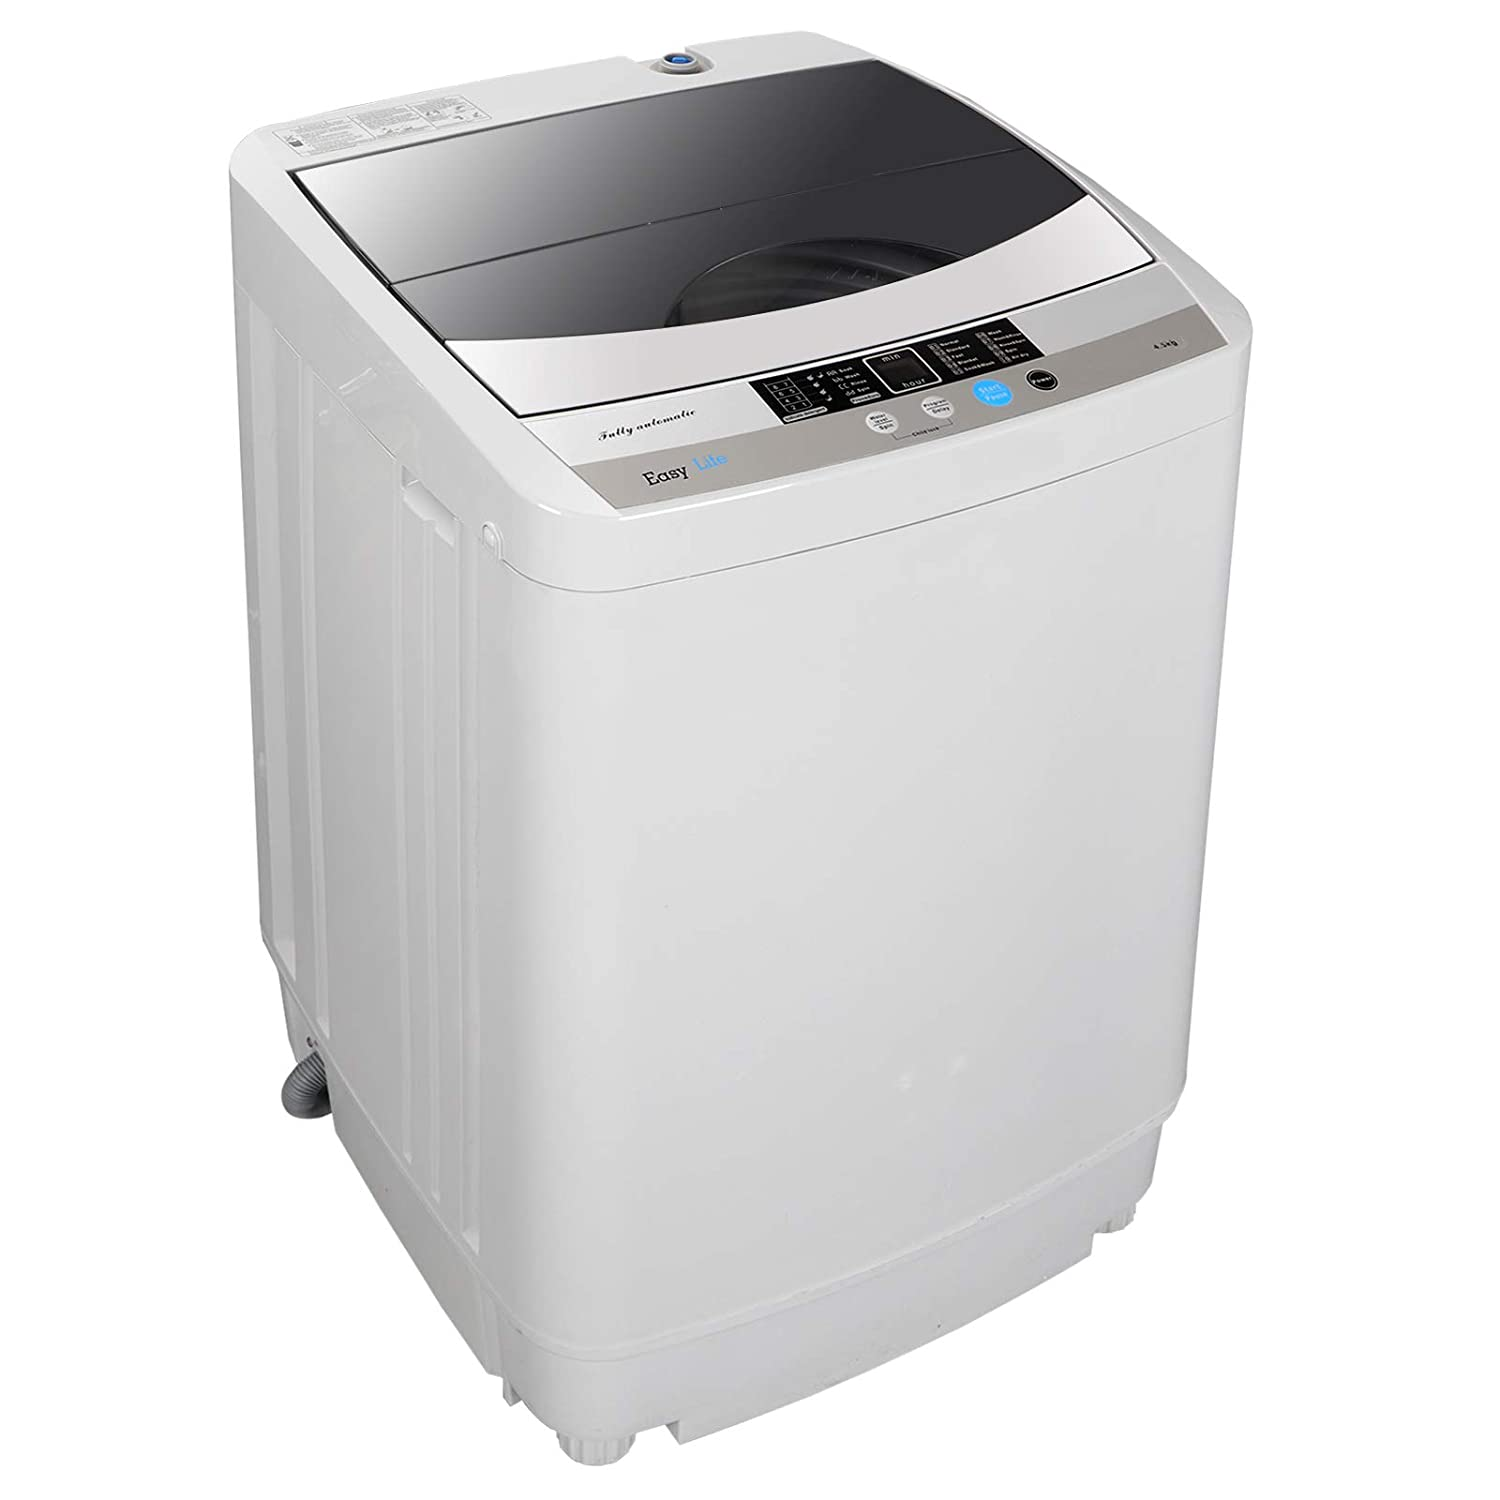 ZENSTYLE Full-Automatic Multifunctional Washing Machine